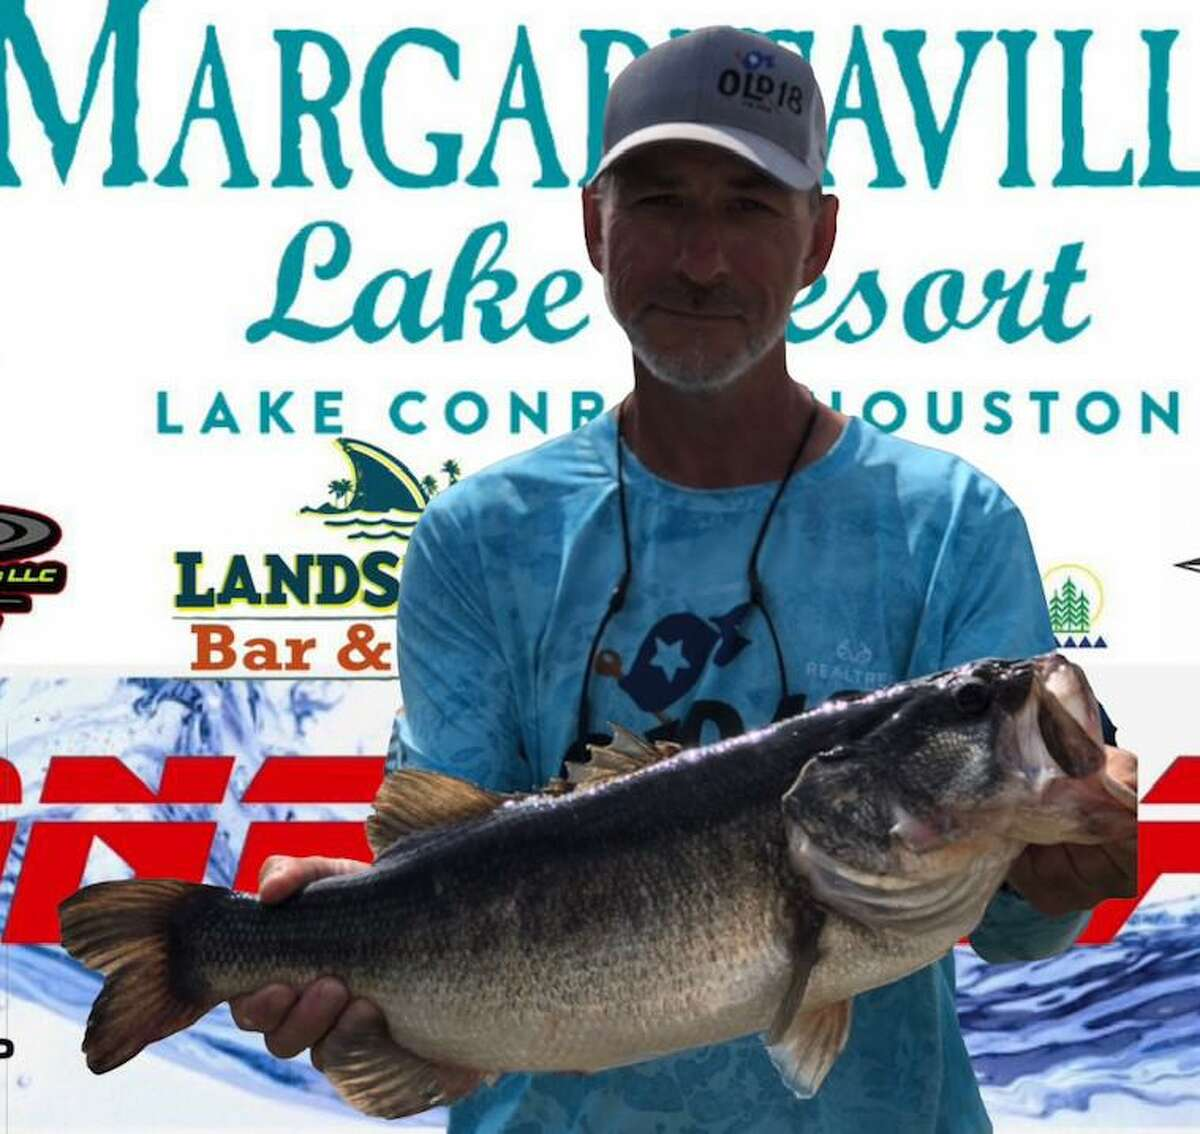 Terry Zorn (pictured) and Danny Singleton had the second place big bass in the CONROEBASS Weekend Series Championship with a weight of 8.38 pounds.